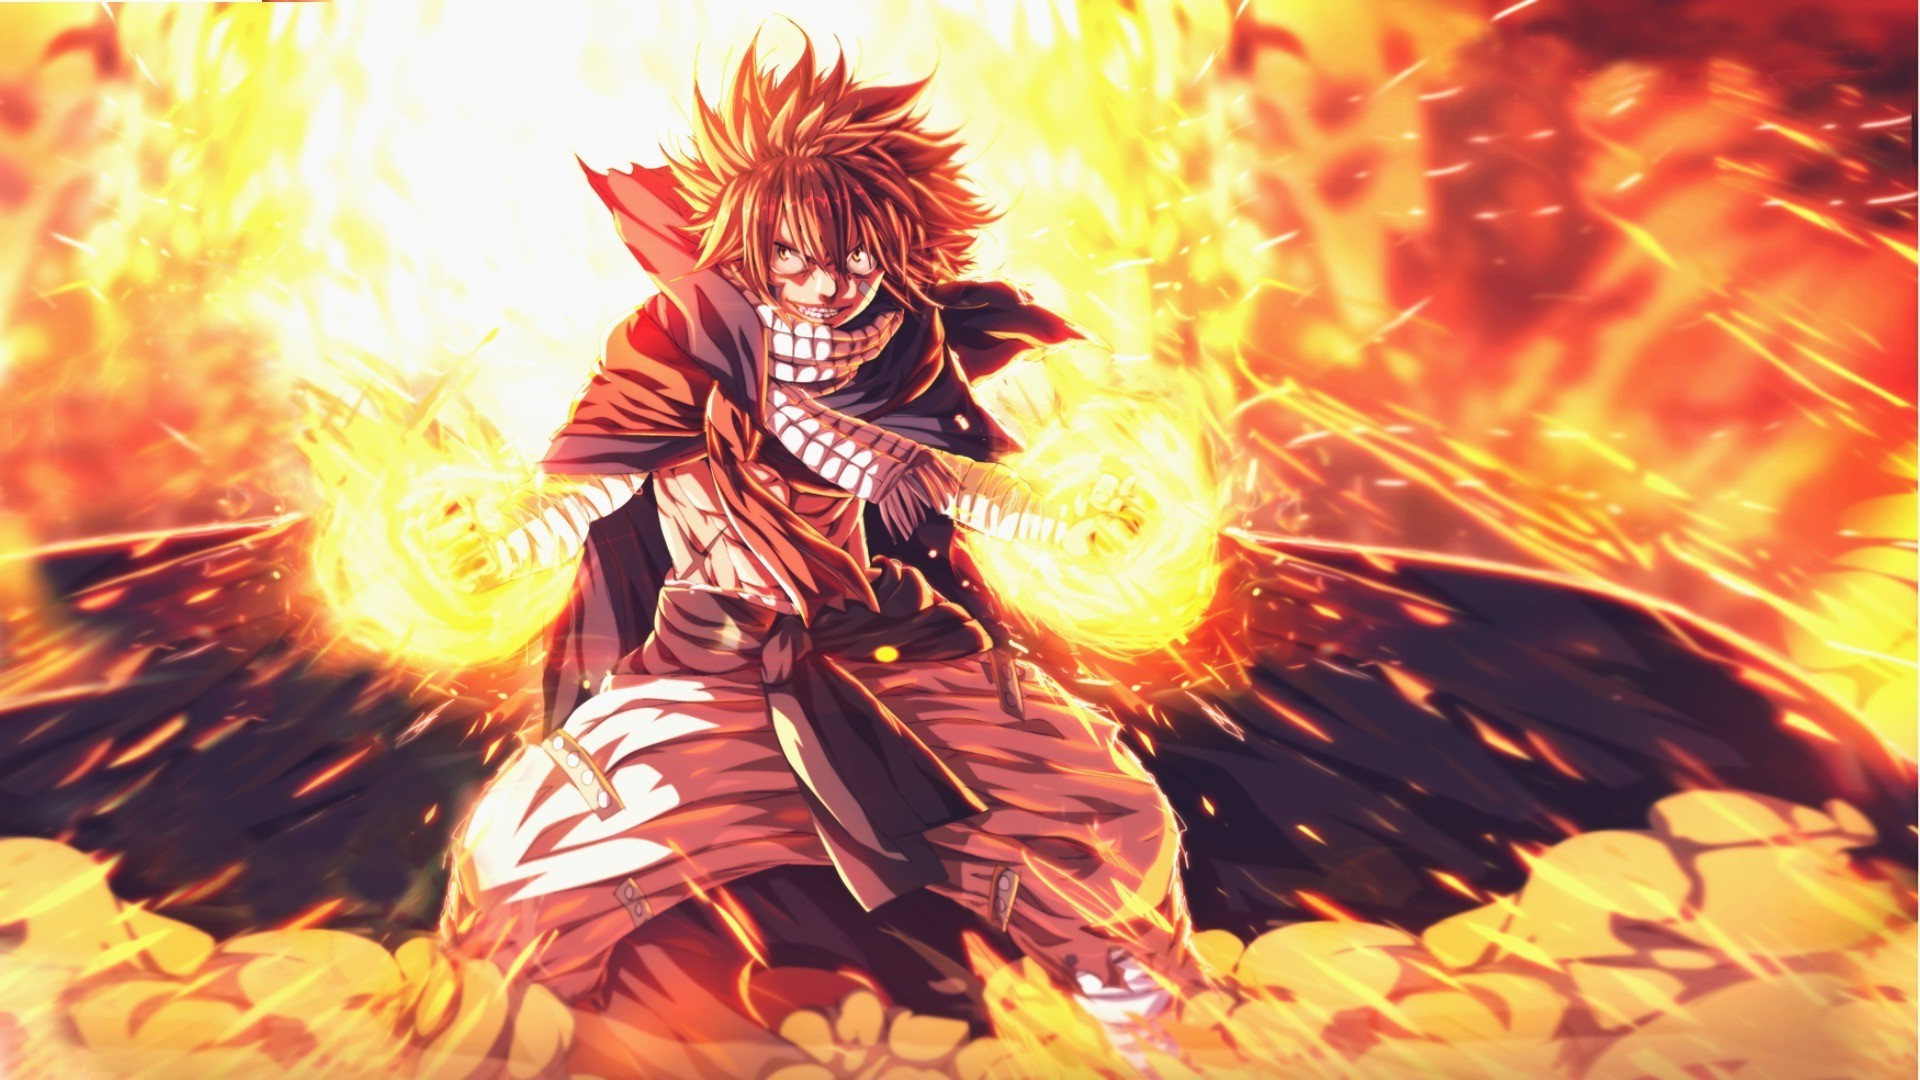 Natsu 3d Wallpapers Fairy Tail Dragneel Natsu Wallpapers Hd Desktop And